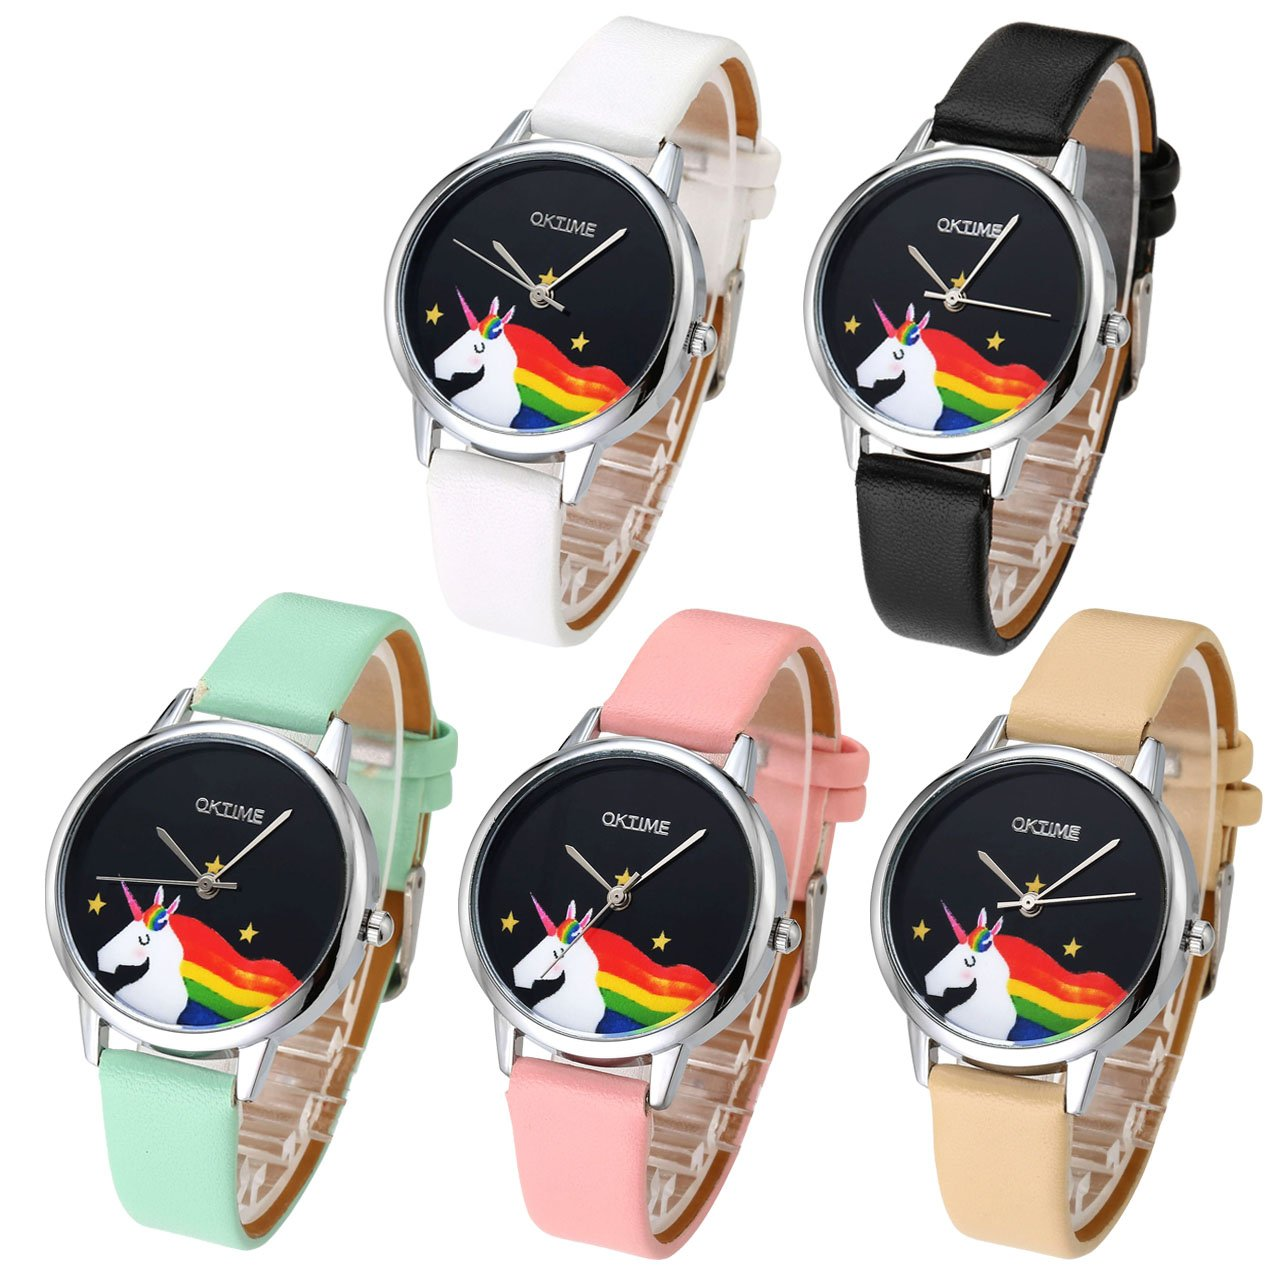 Top Plaza Women Fashion Silver Tone Quartz Analog Watch Thin PU Leather Strap Colorful Horse Pattern 3ATM Waterproof Casual Wrist Watch(Set of 5)